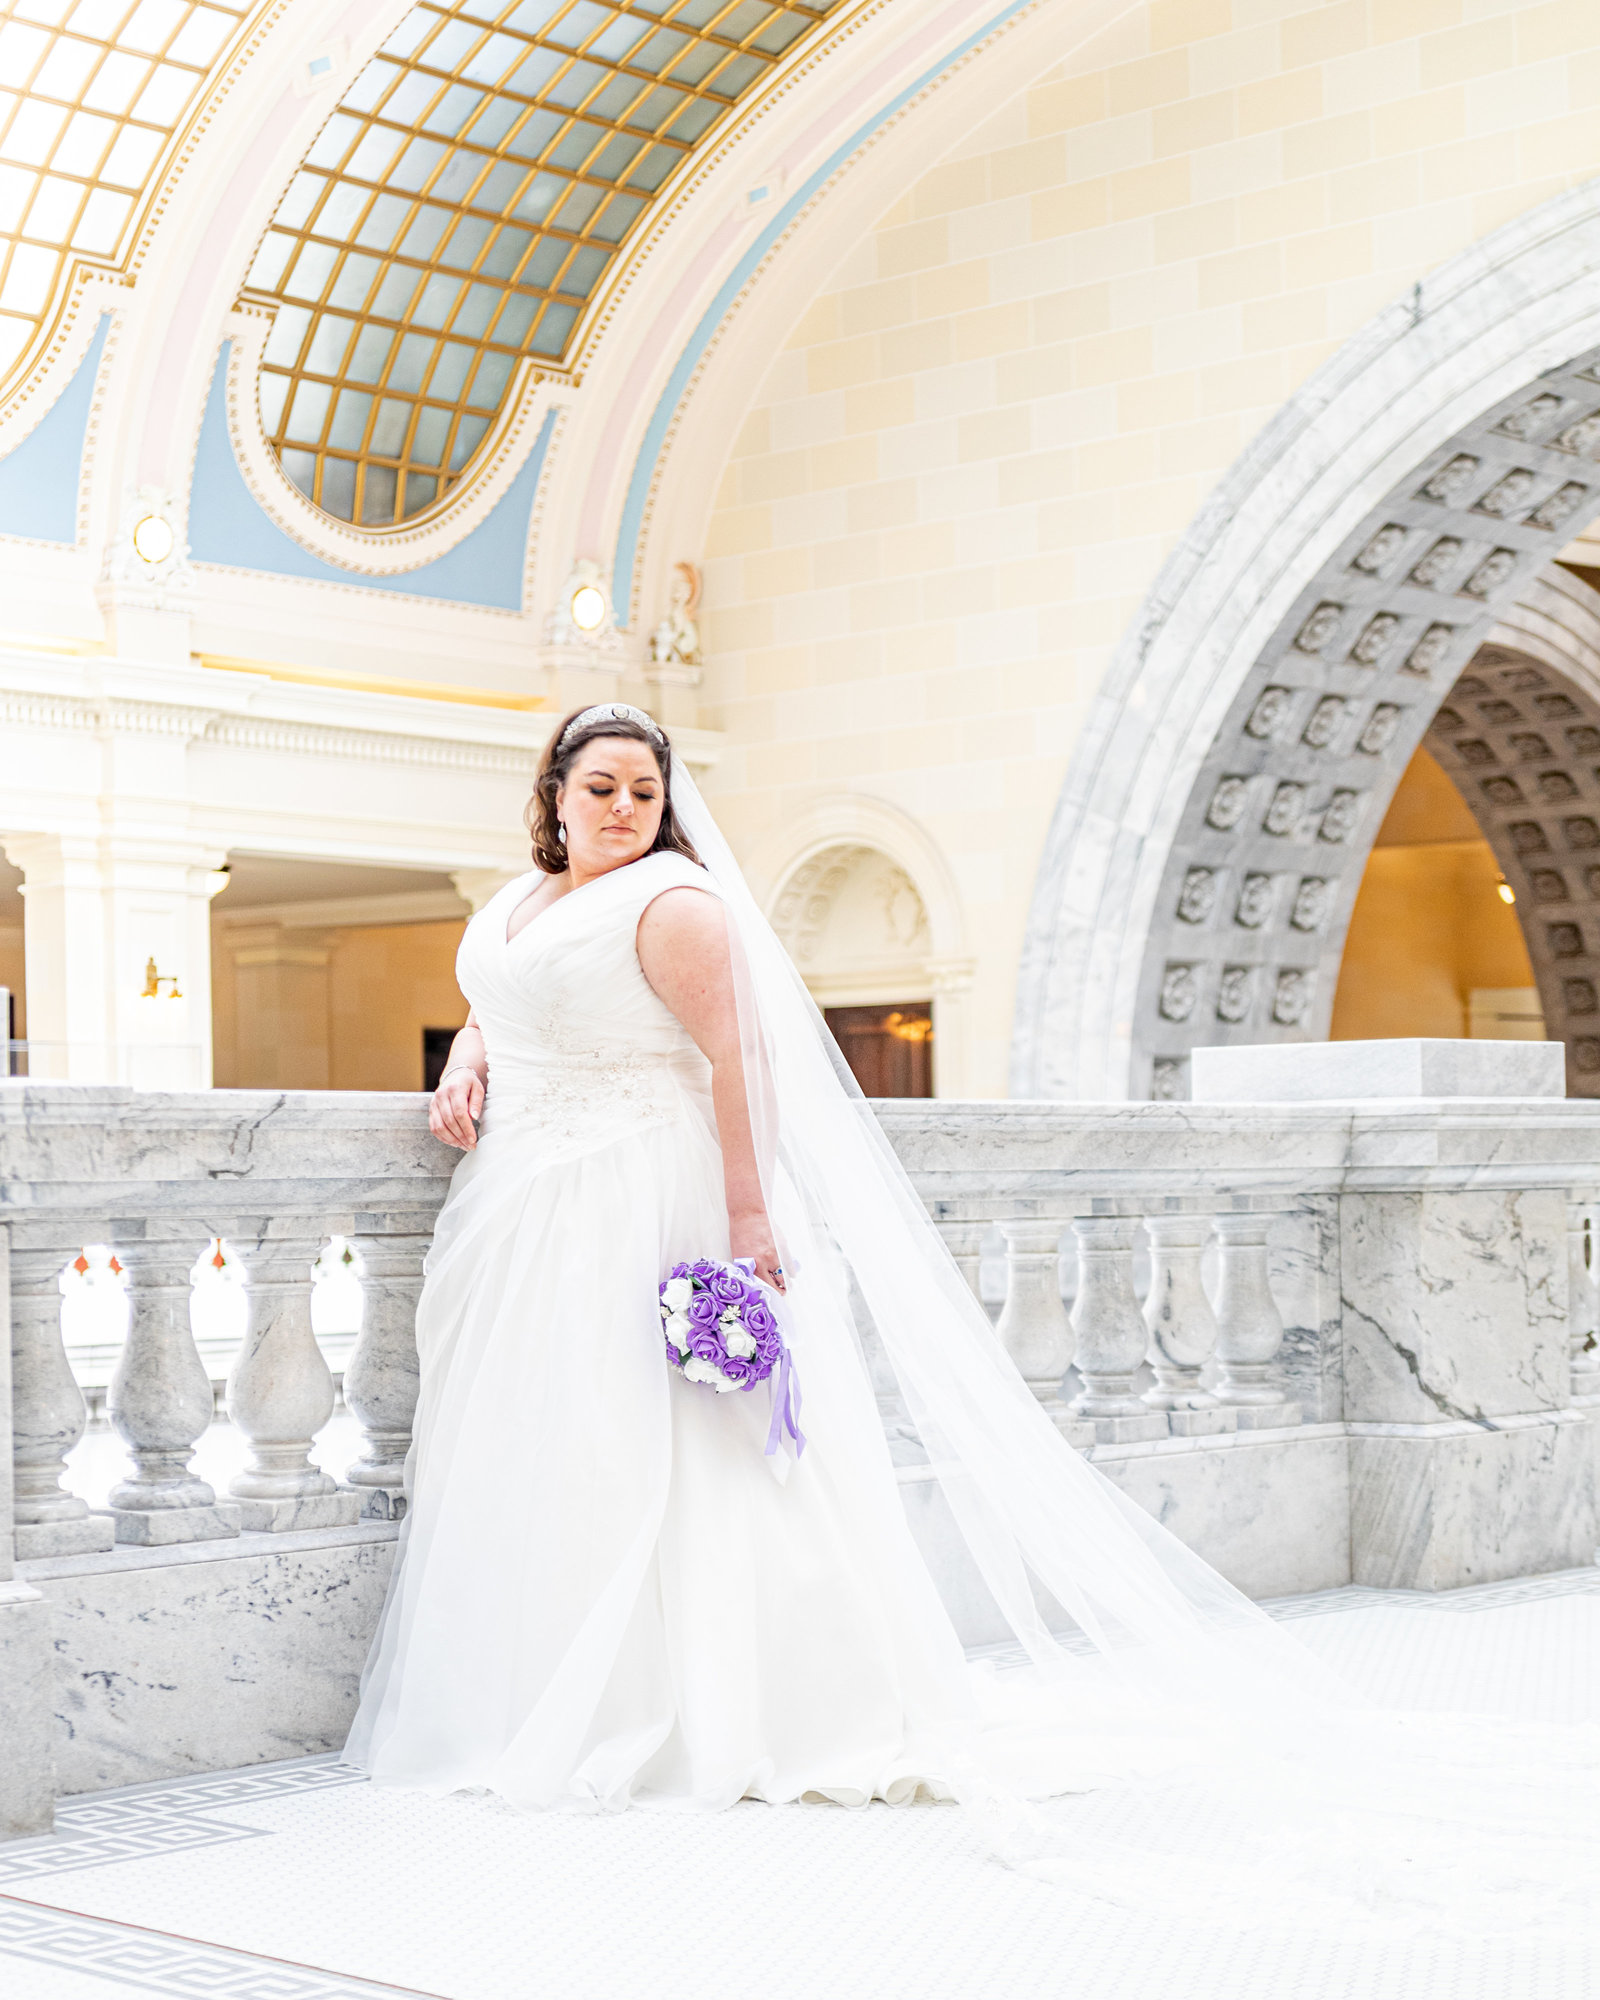 Salt_Lake_City_Wedding_Photographer_Love_Melissa_Photography-14